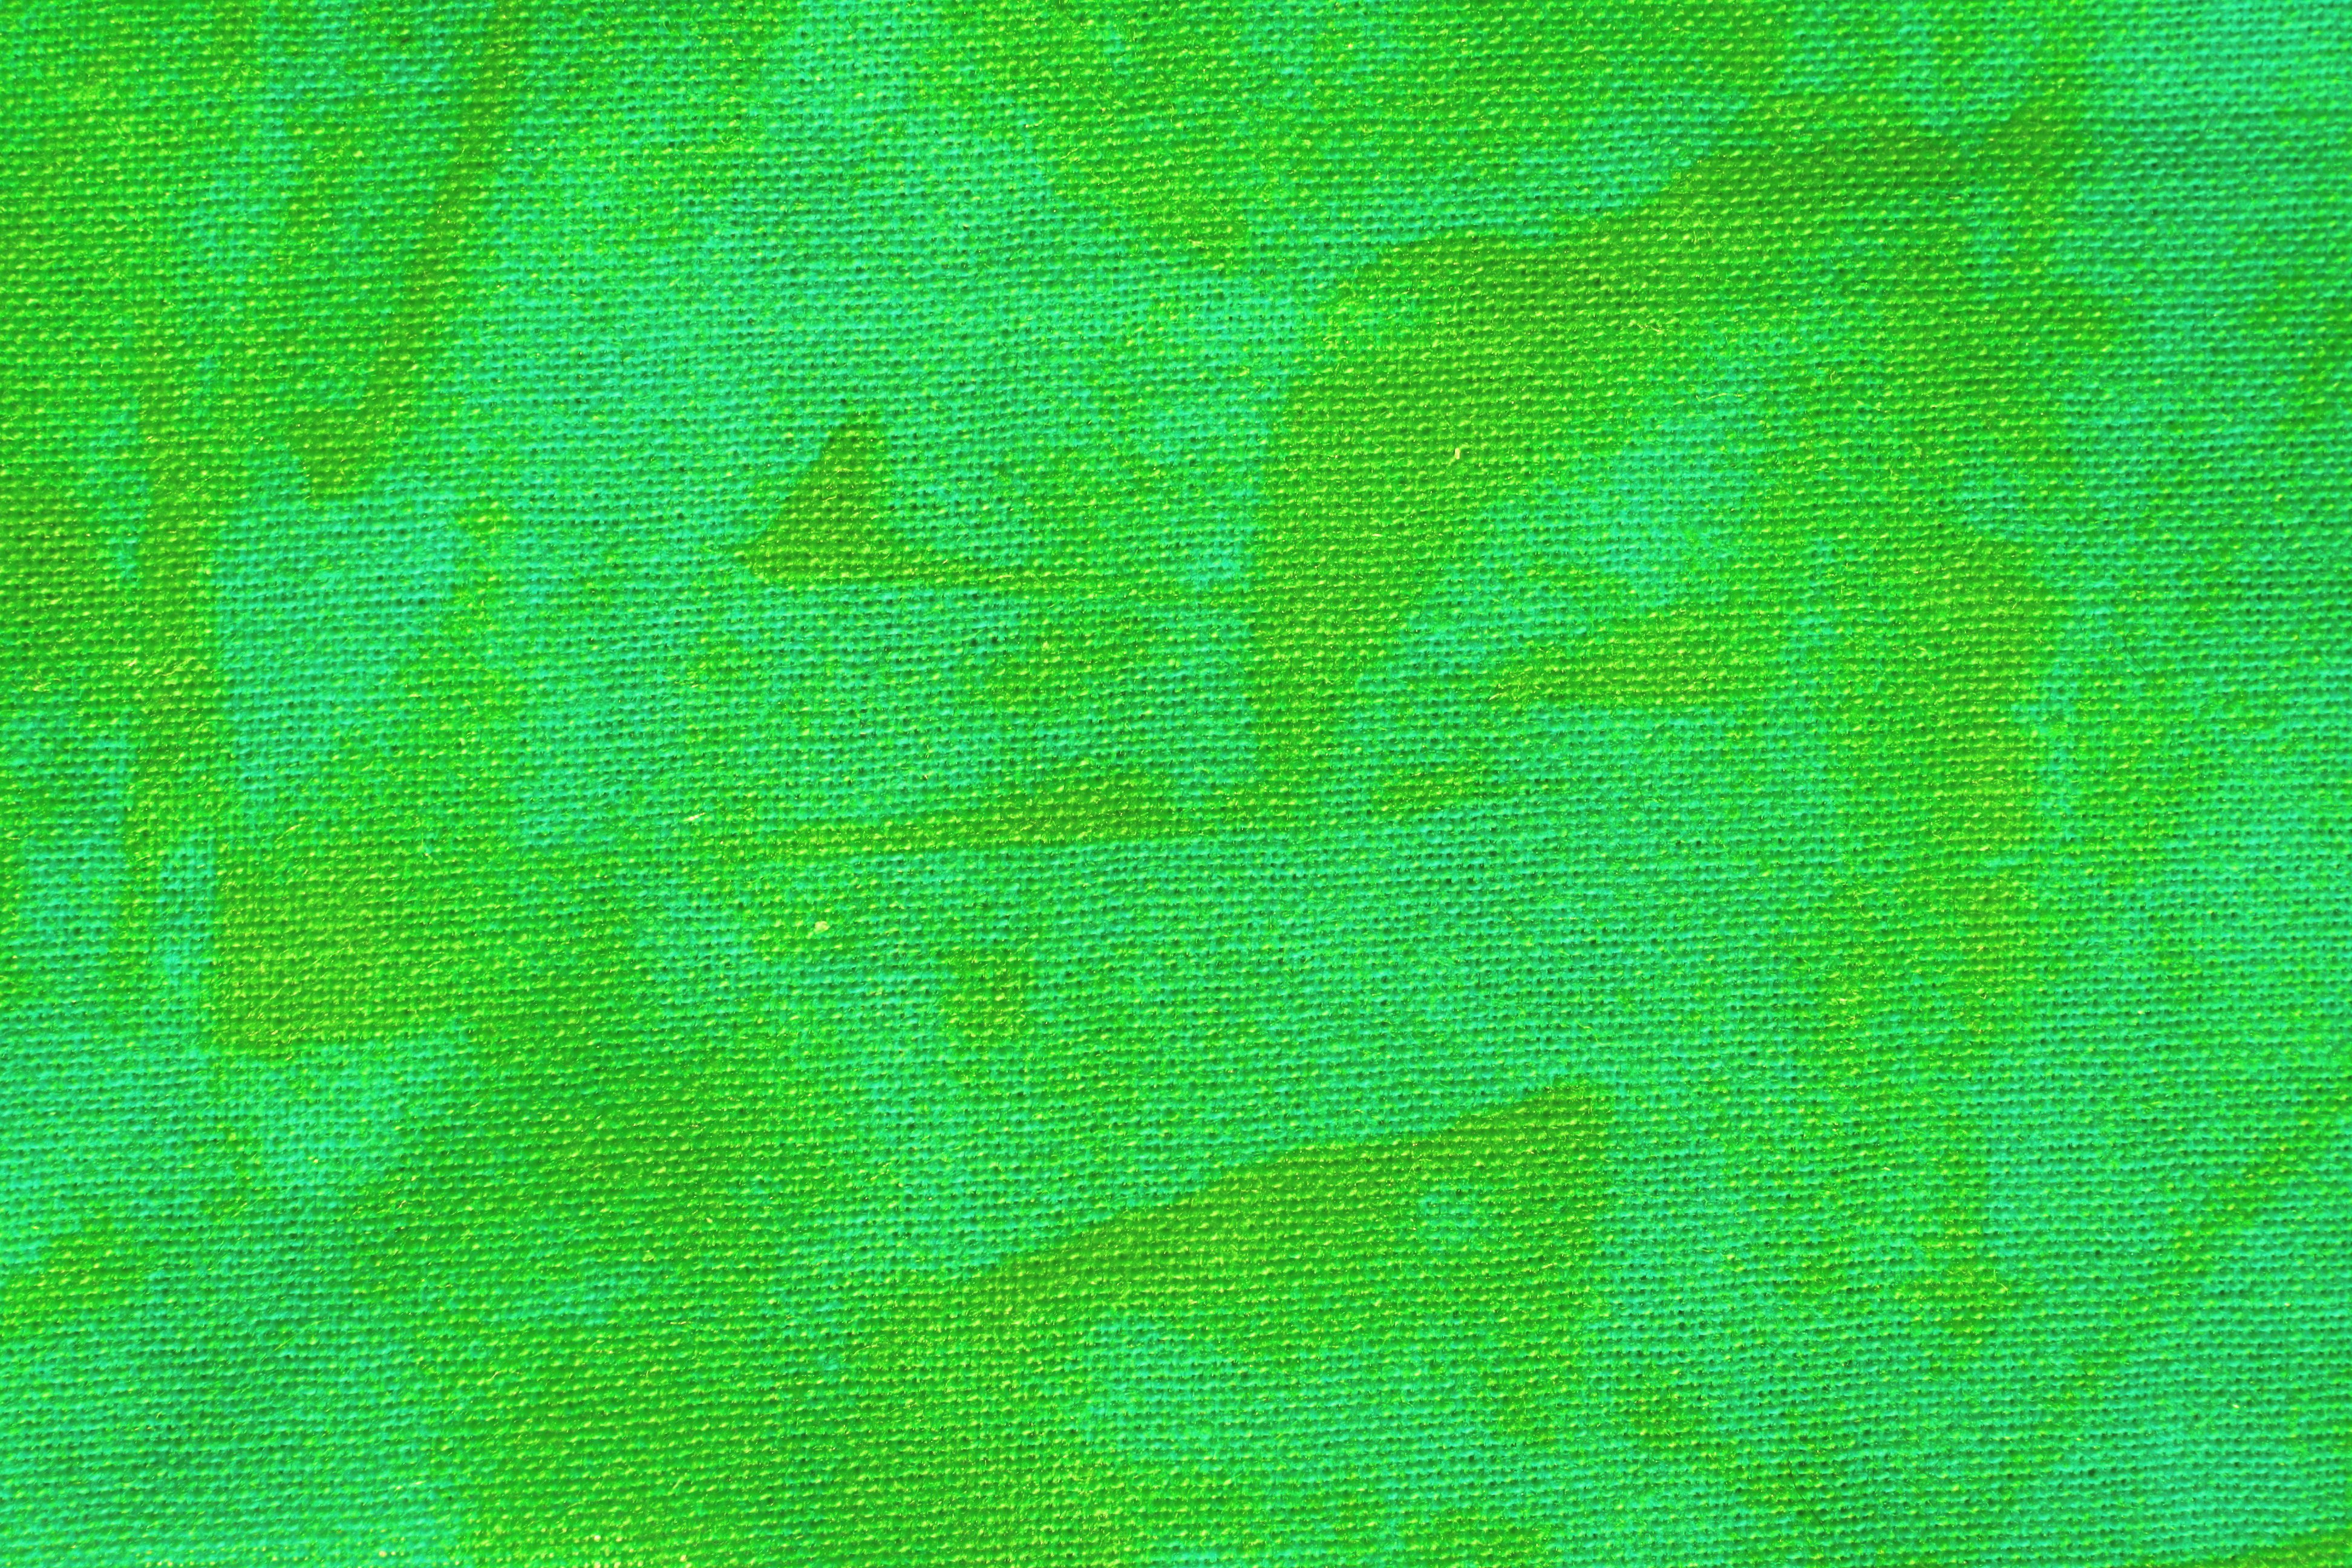 Green random pattern print fabric texture picture free for Green fabric